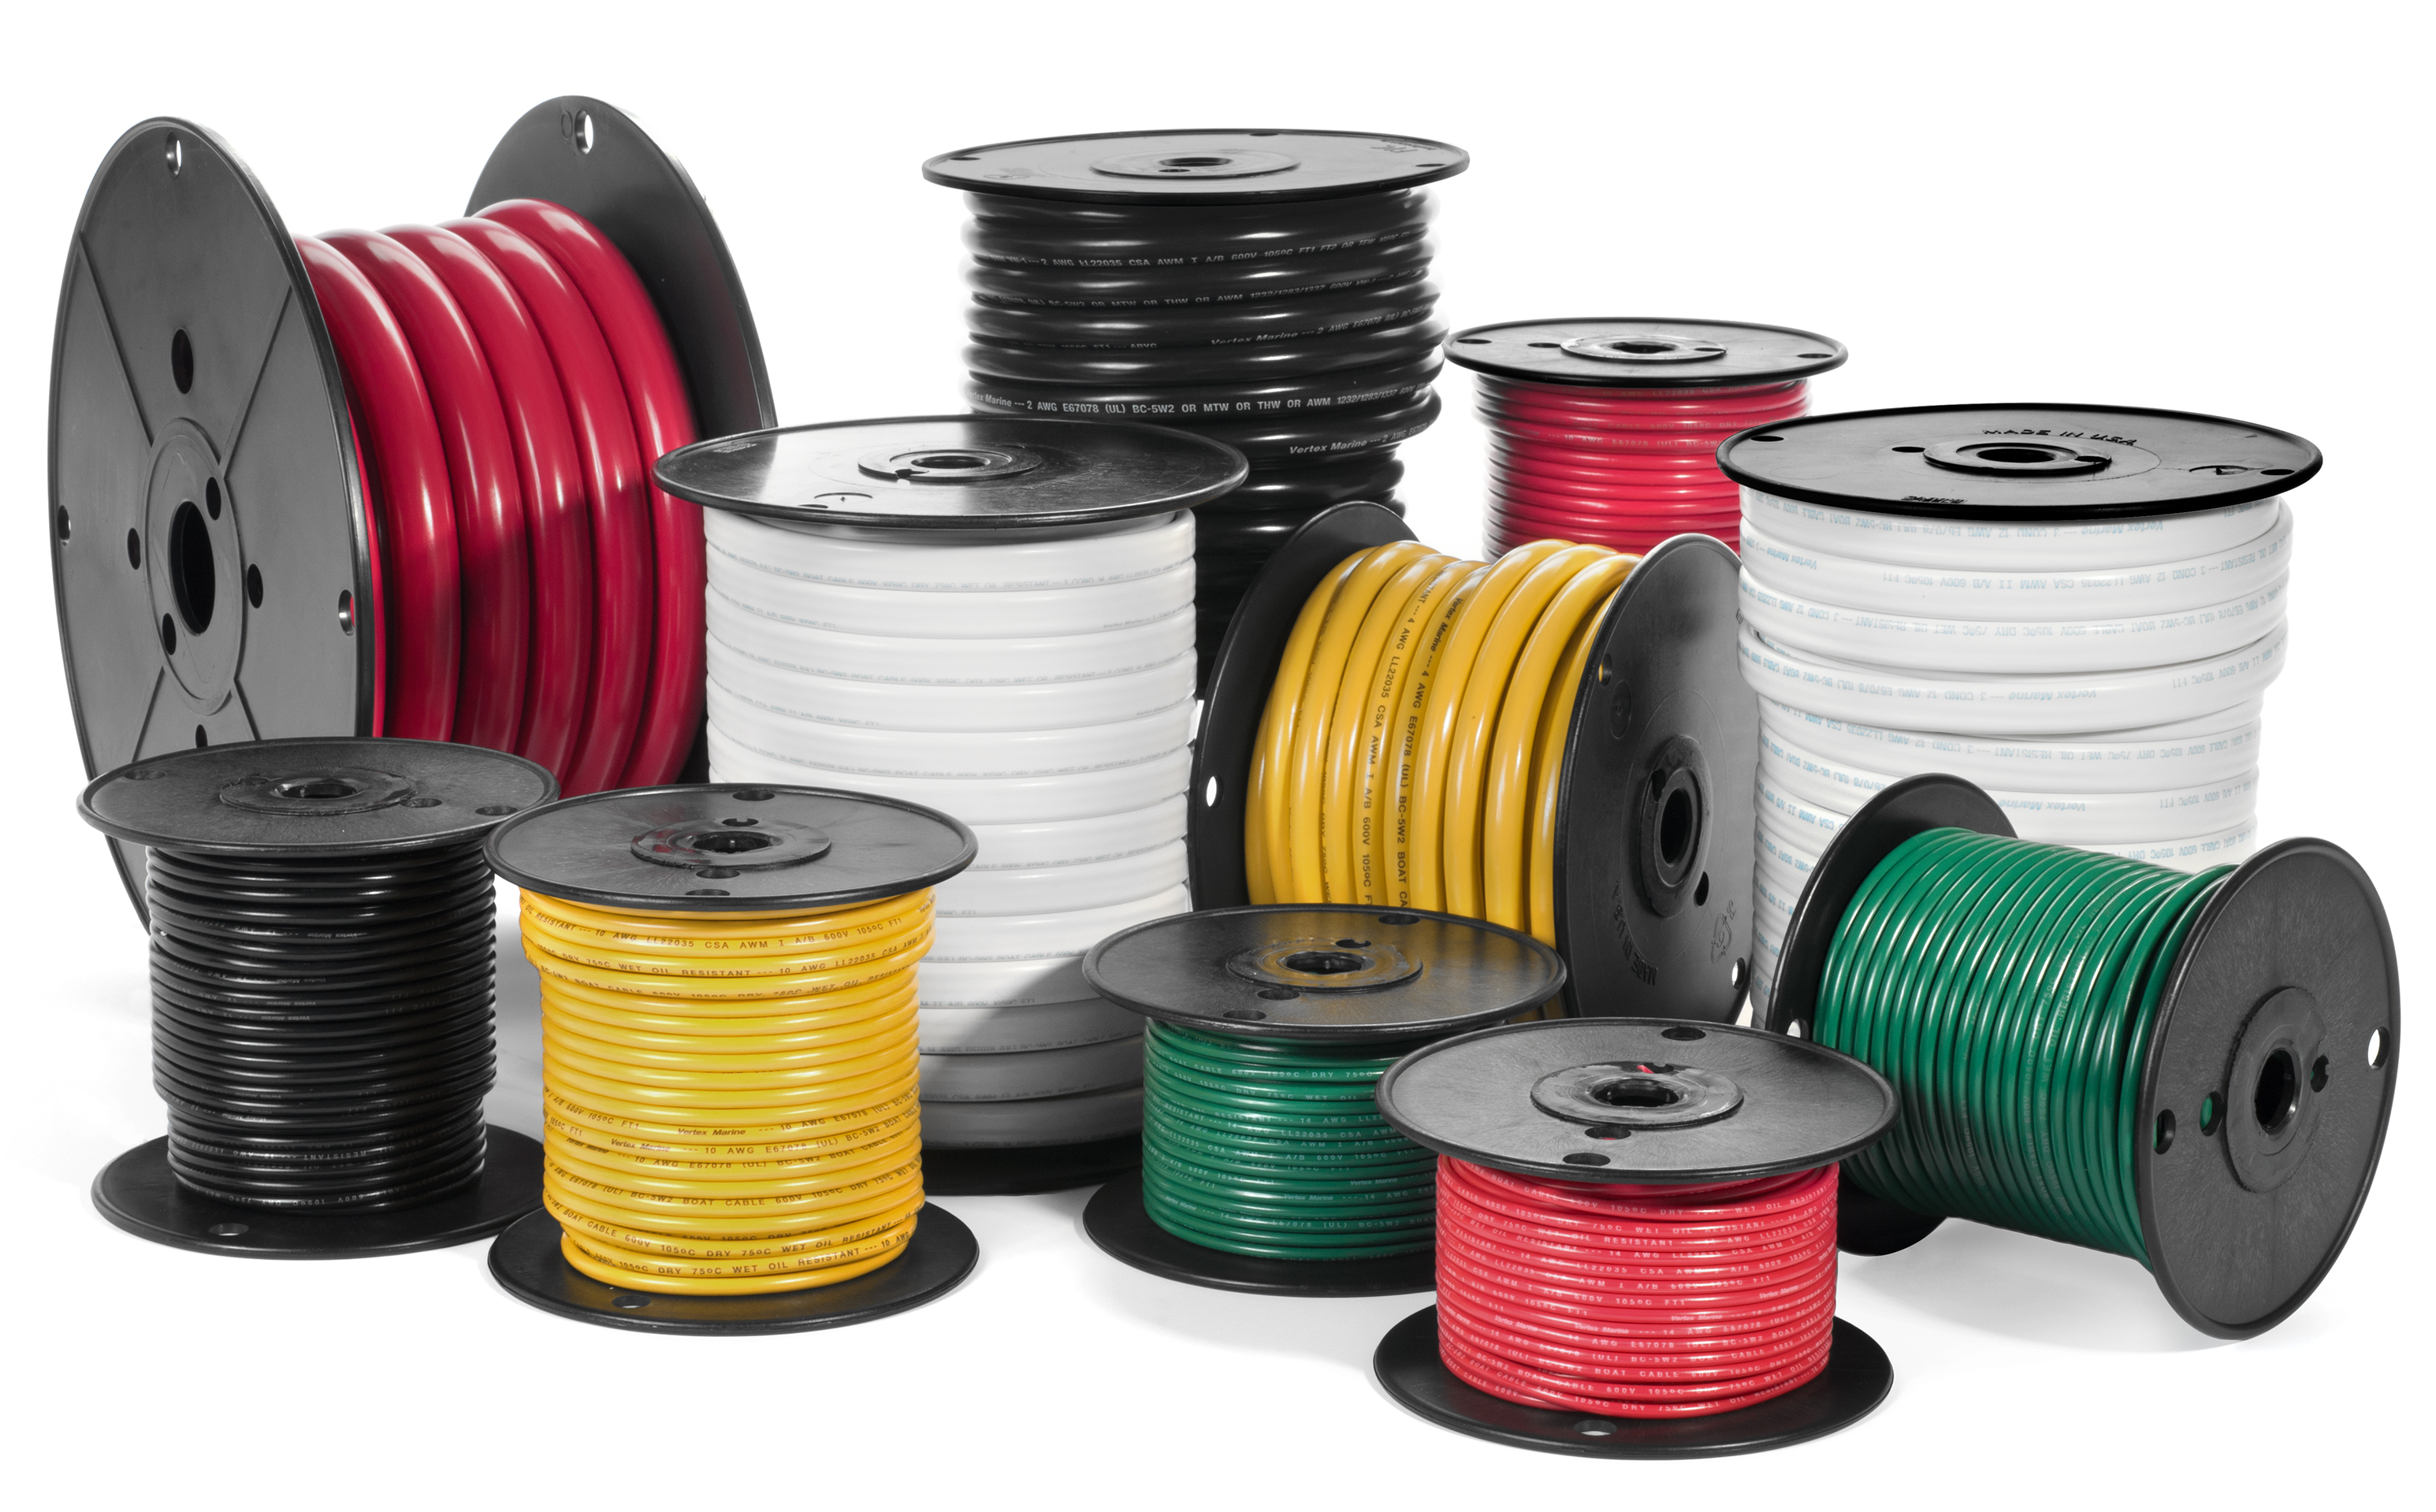 Marine Cables & Accessories - 8-4/0 Gauge UL Approved Marine ...